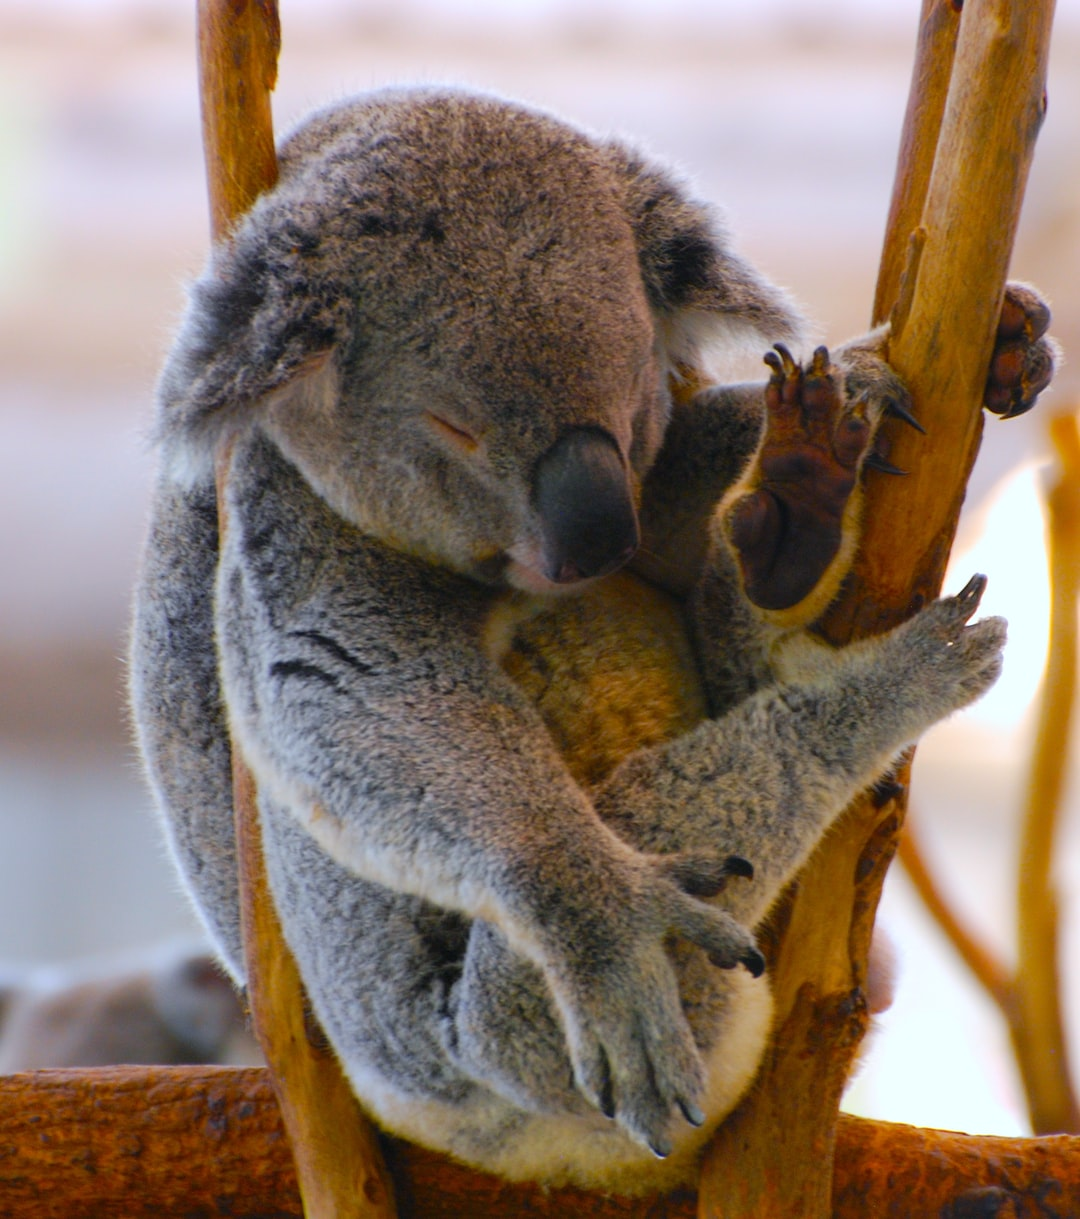 Caught this beautiful sleeping Koala at Lone Pine Koala Sanctuary in Brisbane Australia.  Photo by Kerin Gedge Please let me know if you use my pictures so I can share your links across my social networks!